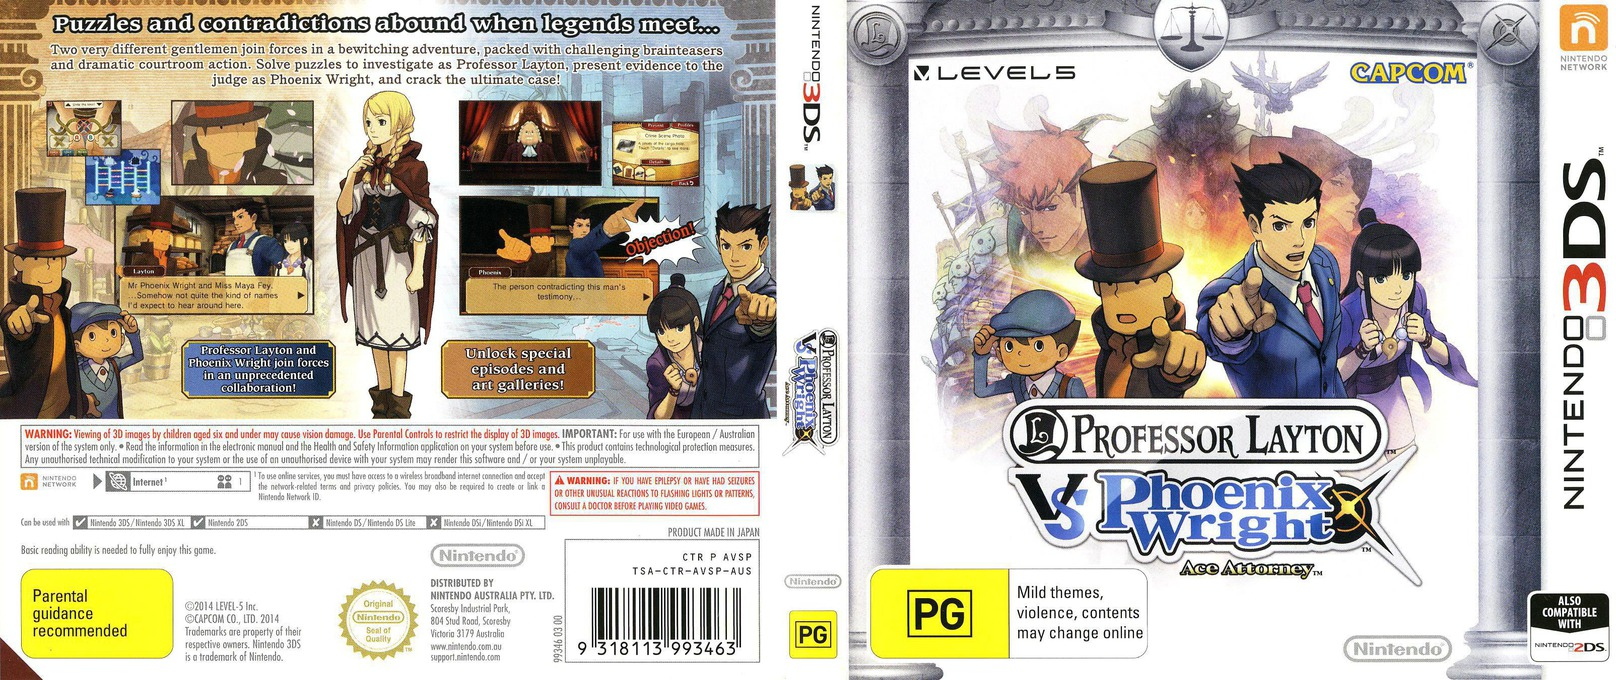 Professor Layton vs. Phoenix Wright - Ace Attorney 3DS coverfullHQ (AVSP)